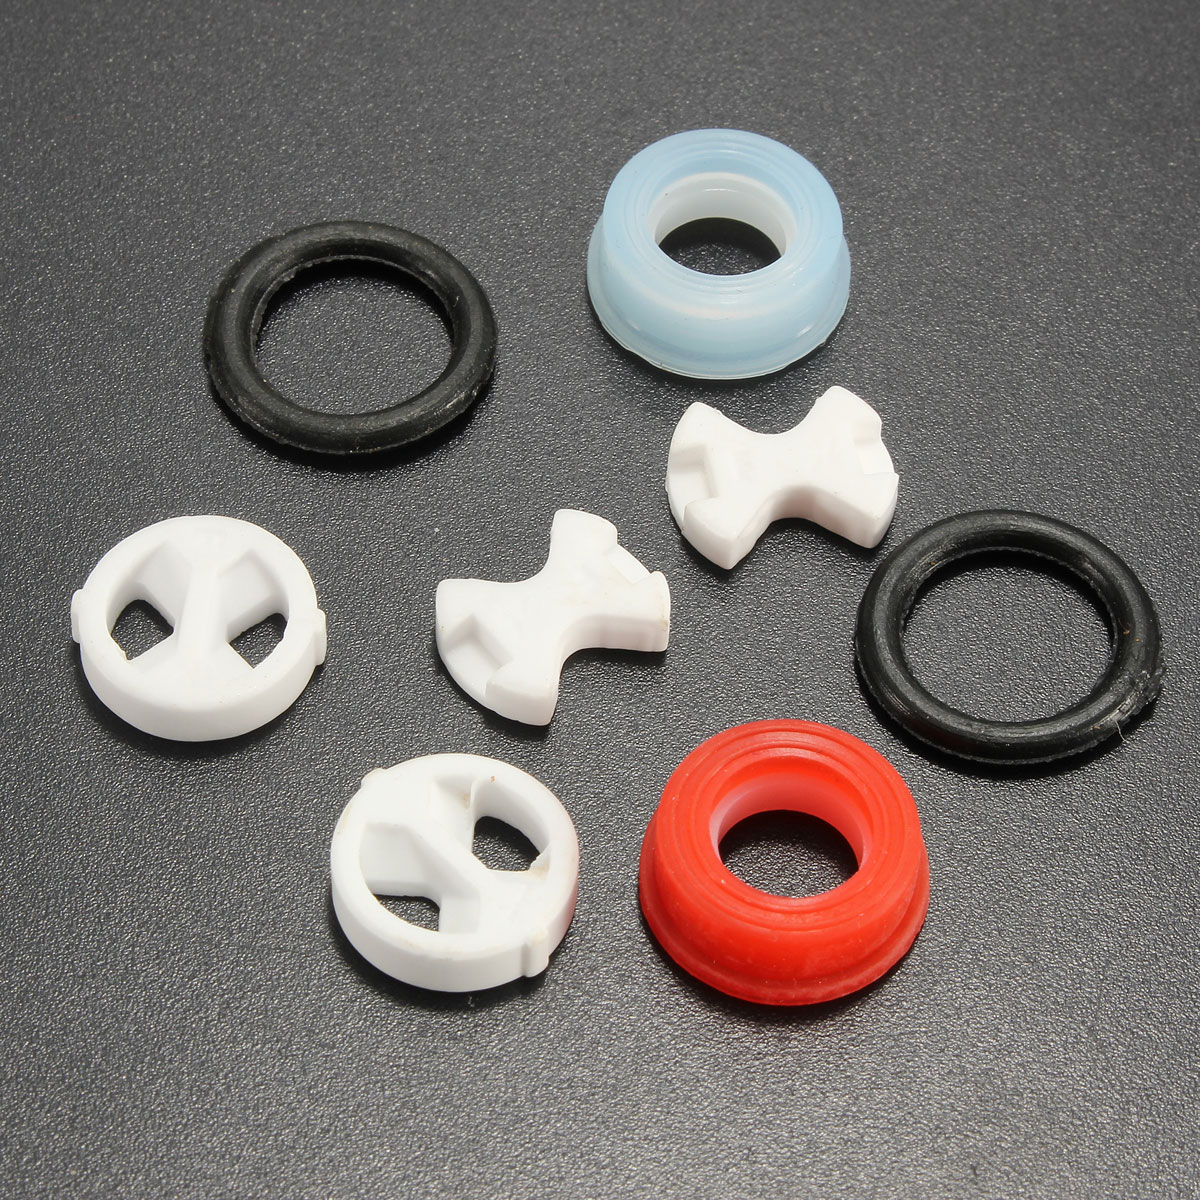 8Pcs Ceramic Disc Silicon Washer Insert Turn Replacement  1/2